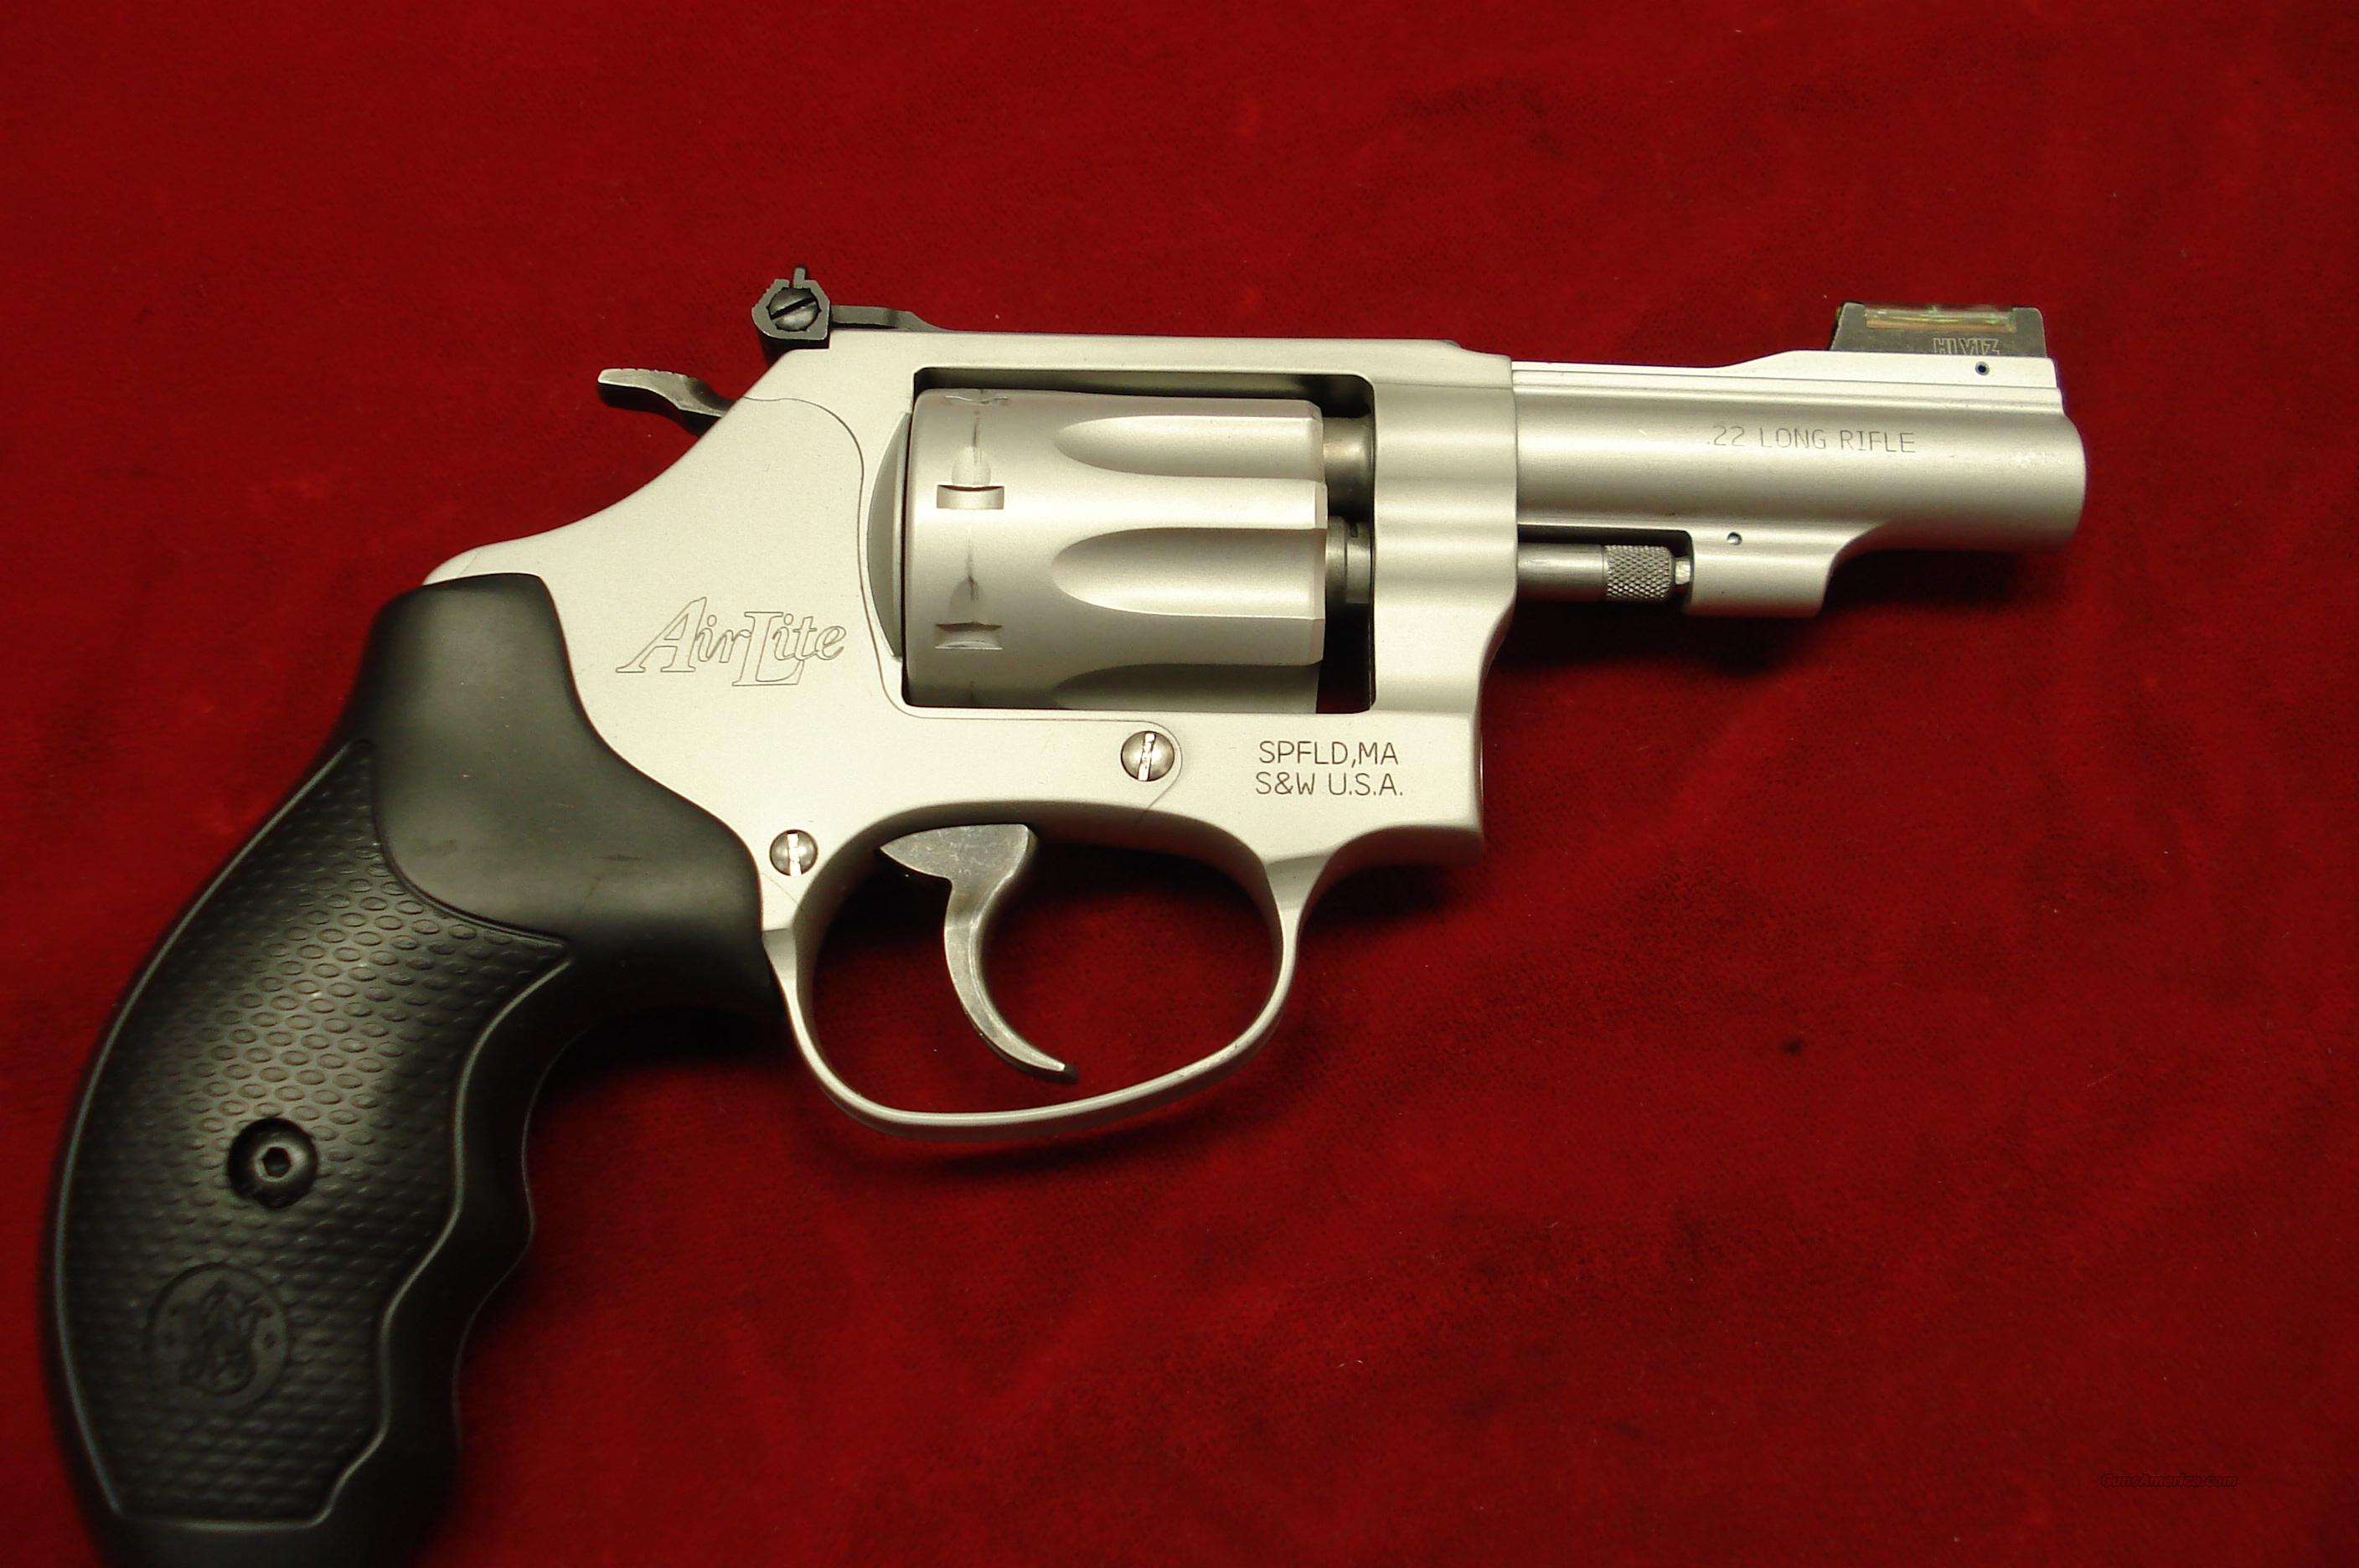 "SMITH AND WESSON 317 AIRLITE 3"" 22LR NEW  Guns > Pistols > Smith & Wesson Revolvers > Pocket Pistols"